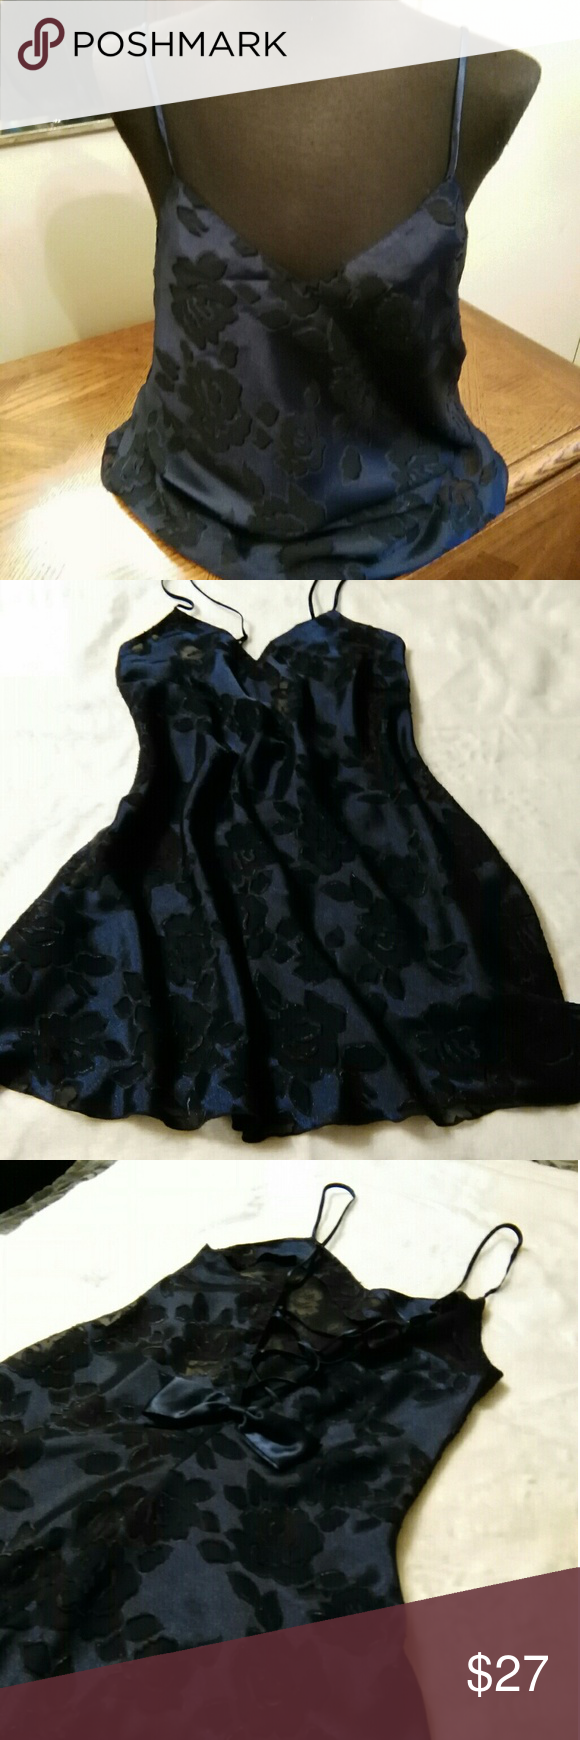 "Victoris's Secret navy blue gown Beautiful navy blue short nite gown with bow at the bottom of the lace up back.  No stains, holes or tears, non smoking home. Length from under arm to hem is 23"". Victoria's Secret Intimates & Sleepwear"